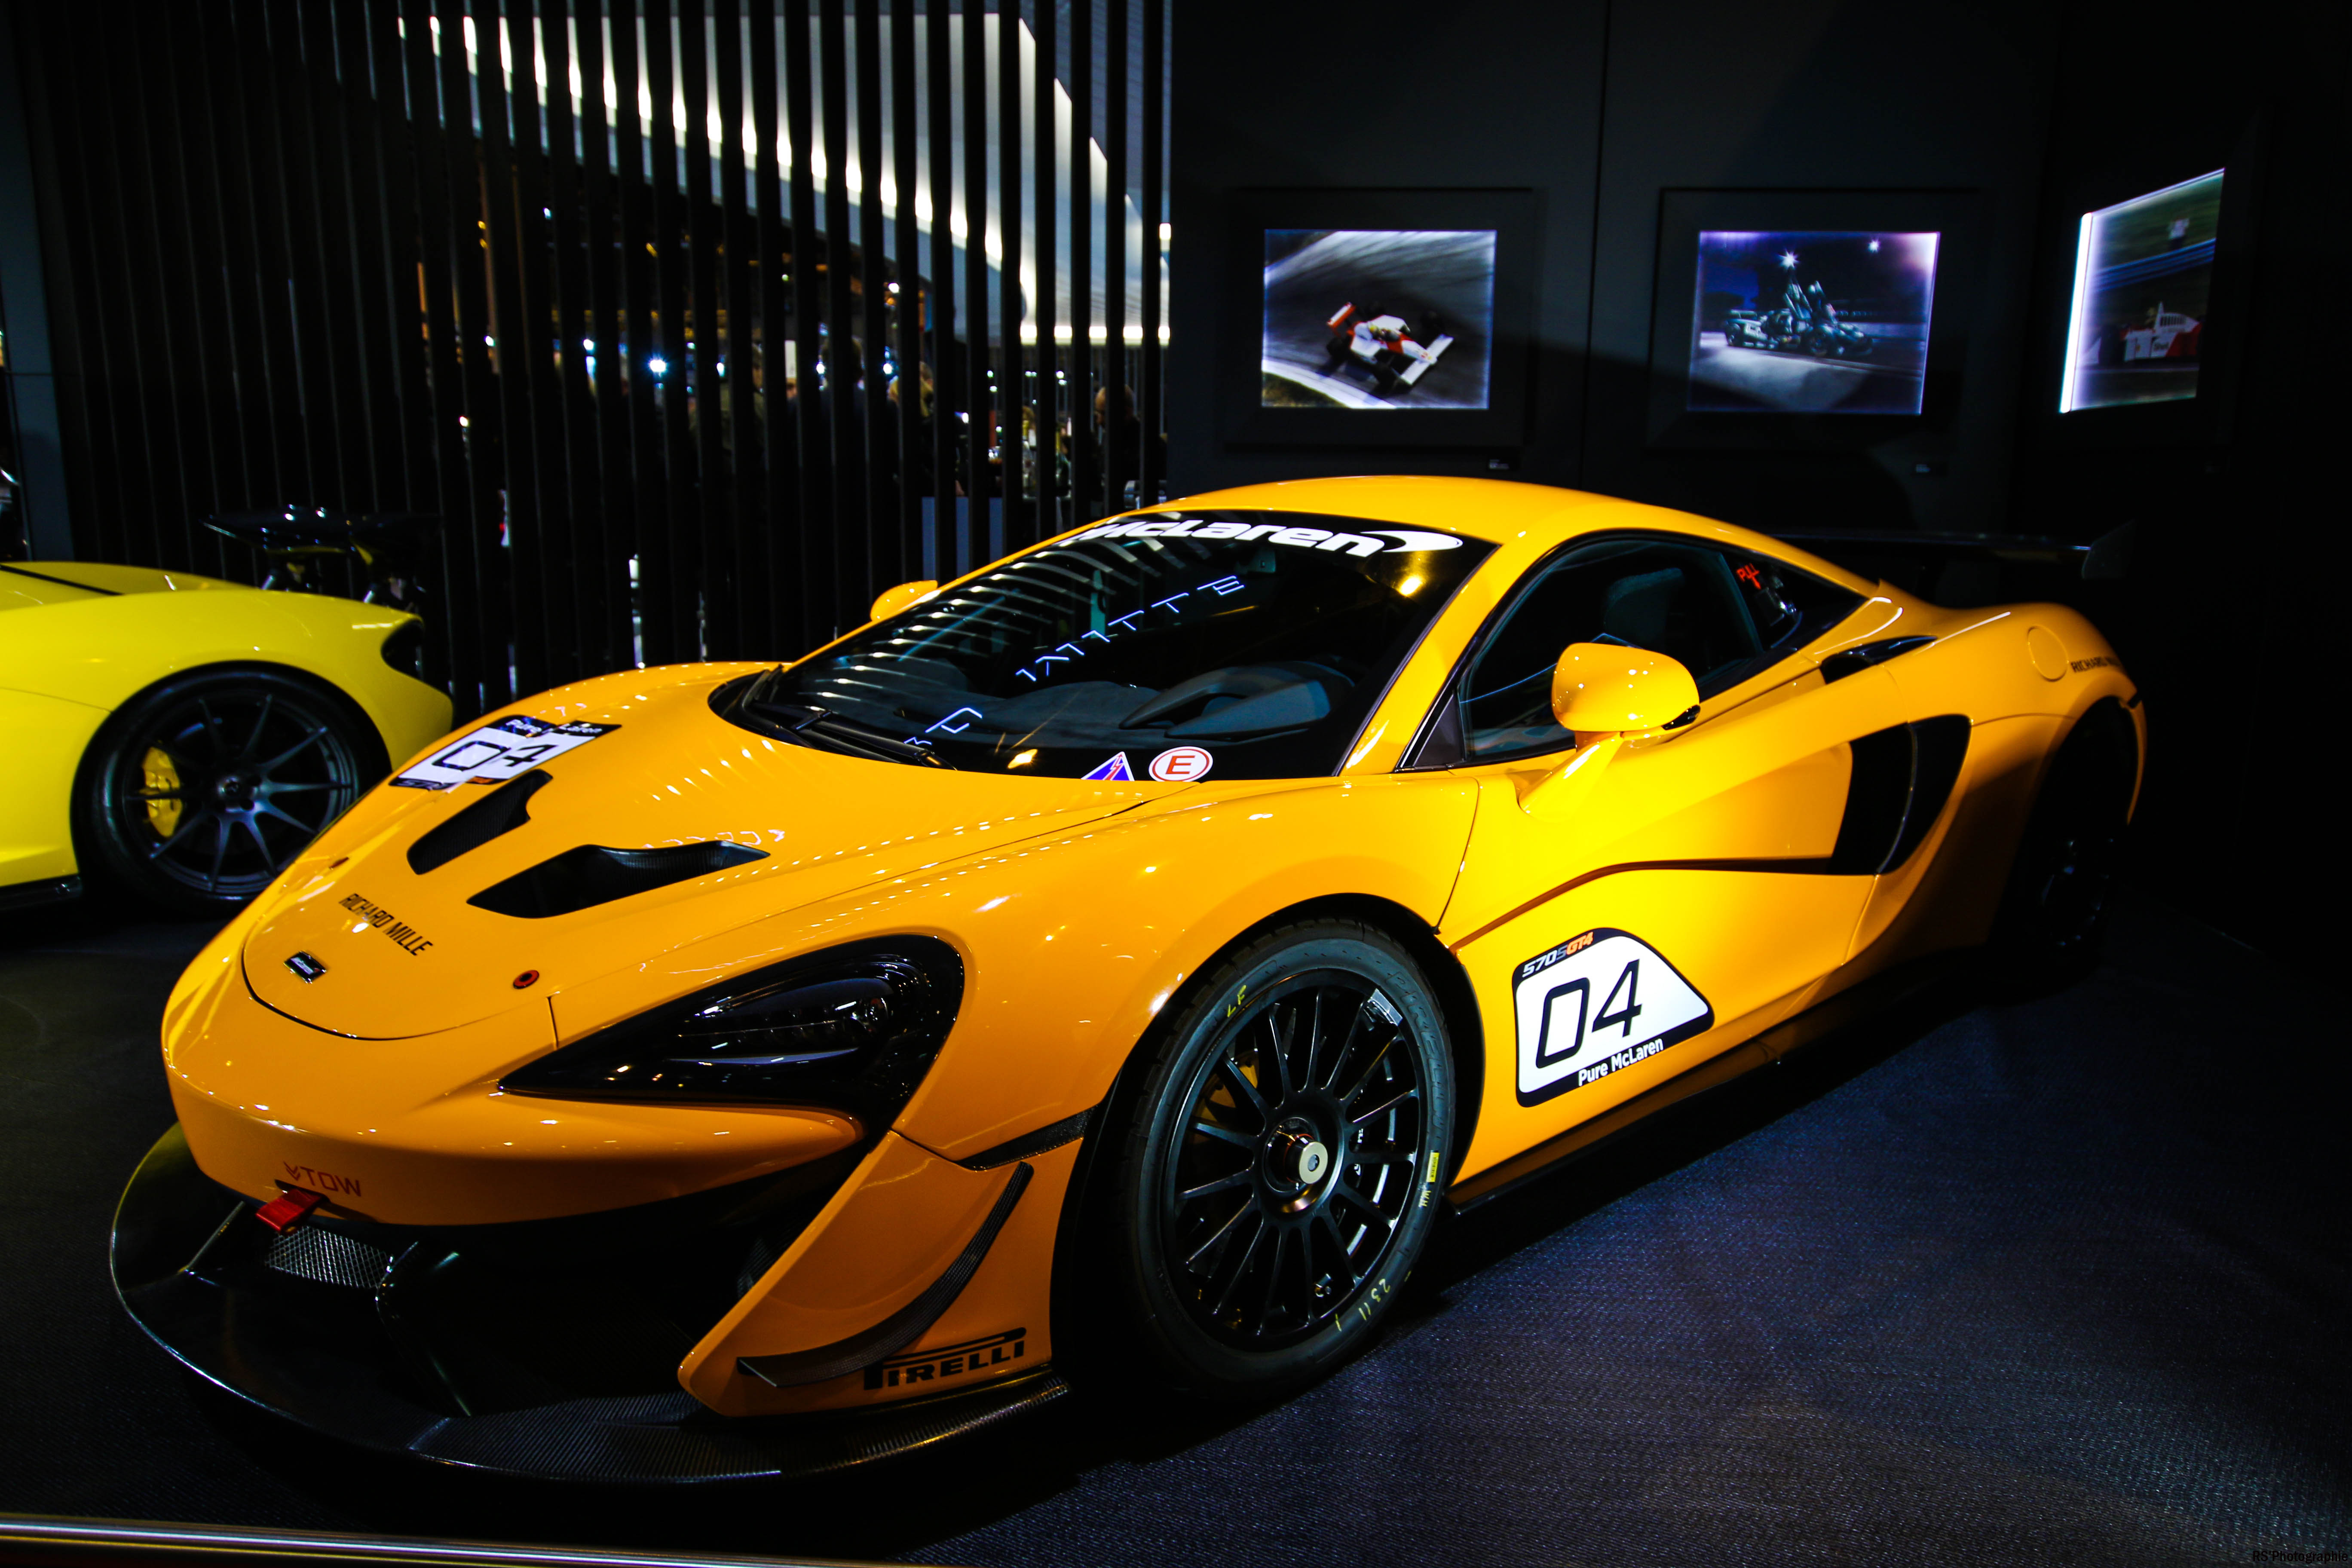 McLaren 570S GT4 - 2018 - stand Richard Mille - Retromobile 2018 - photo by Arnaud Demasier RS Photographie